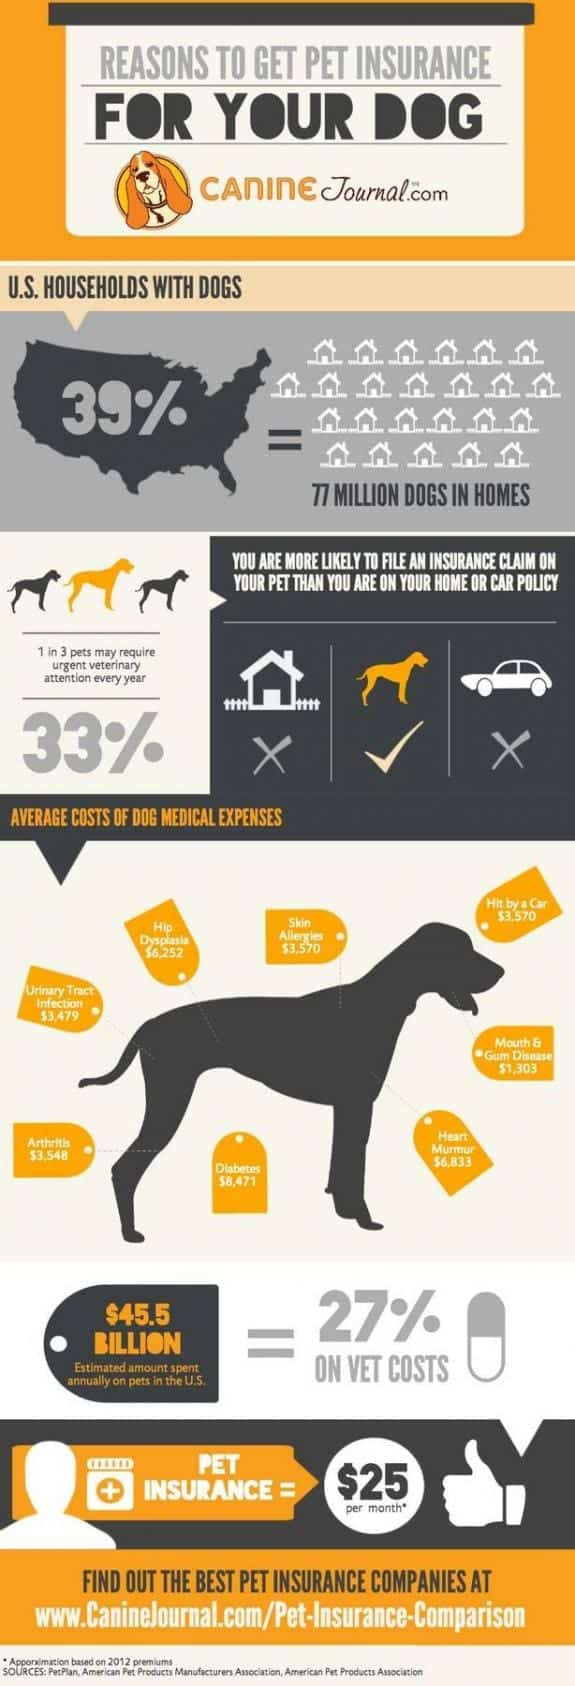 Reasons to Get Pet Insurance for Your Dog